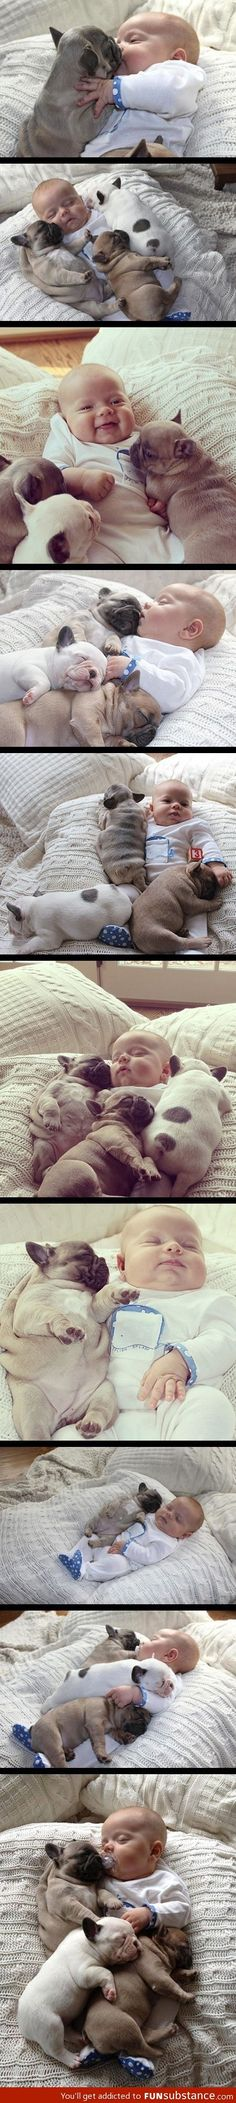 Cuteness overload! German bulldogs and a baby